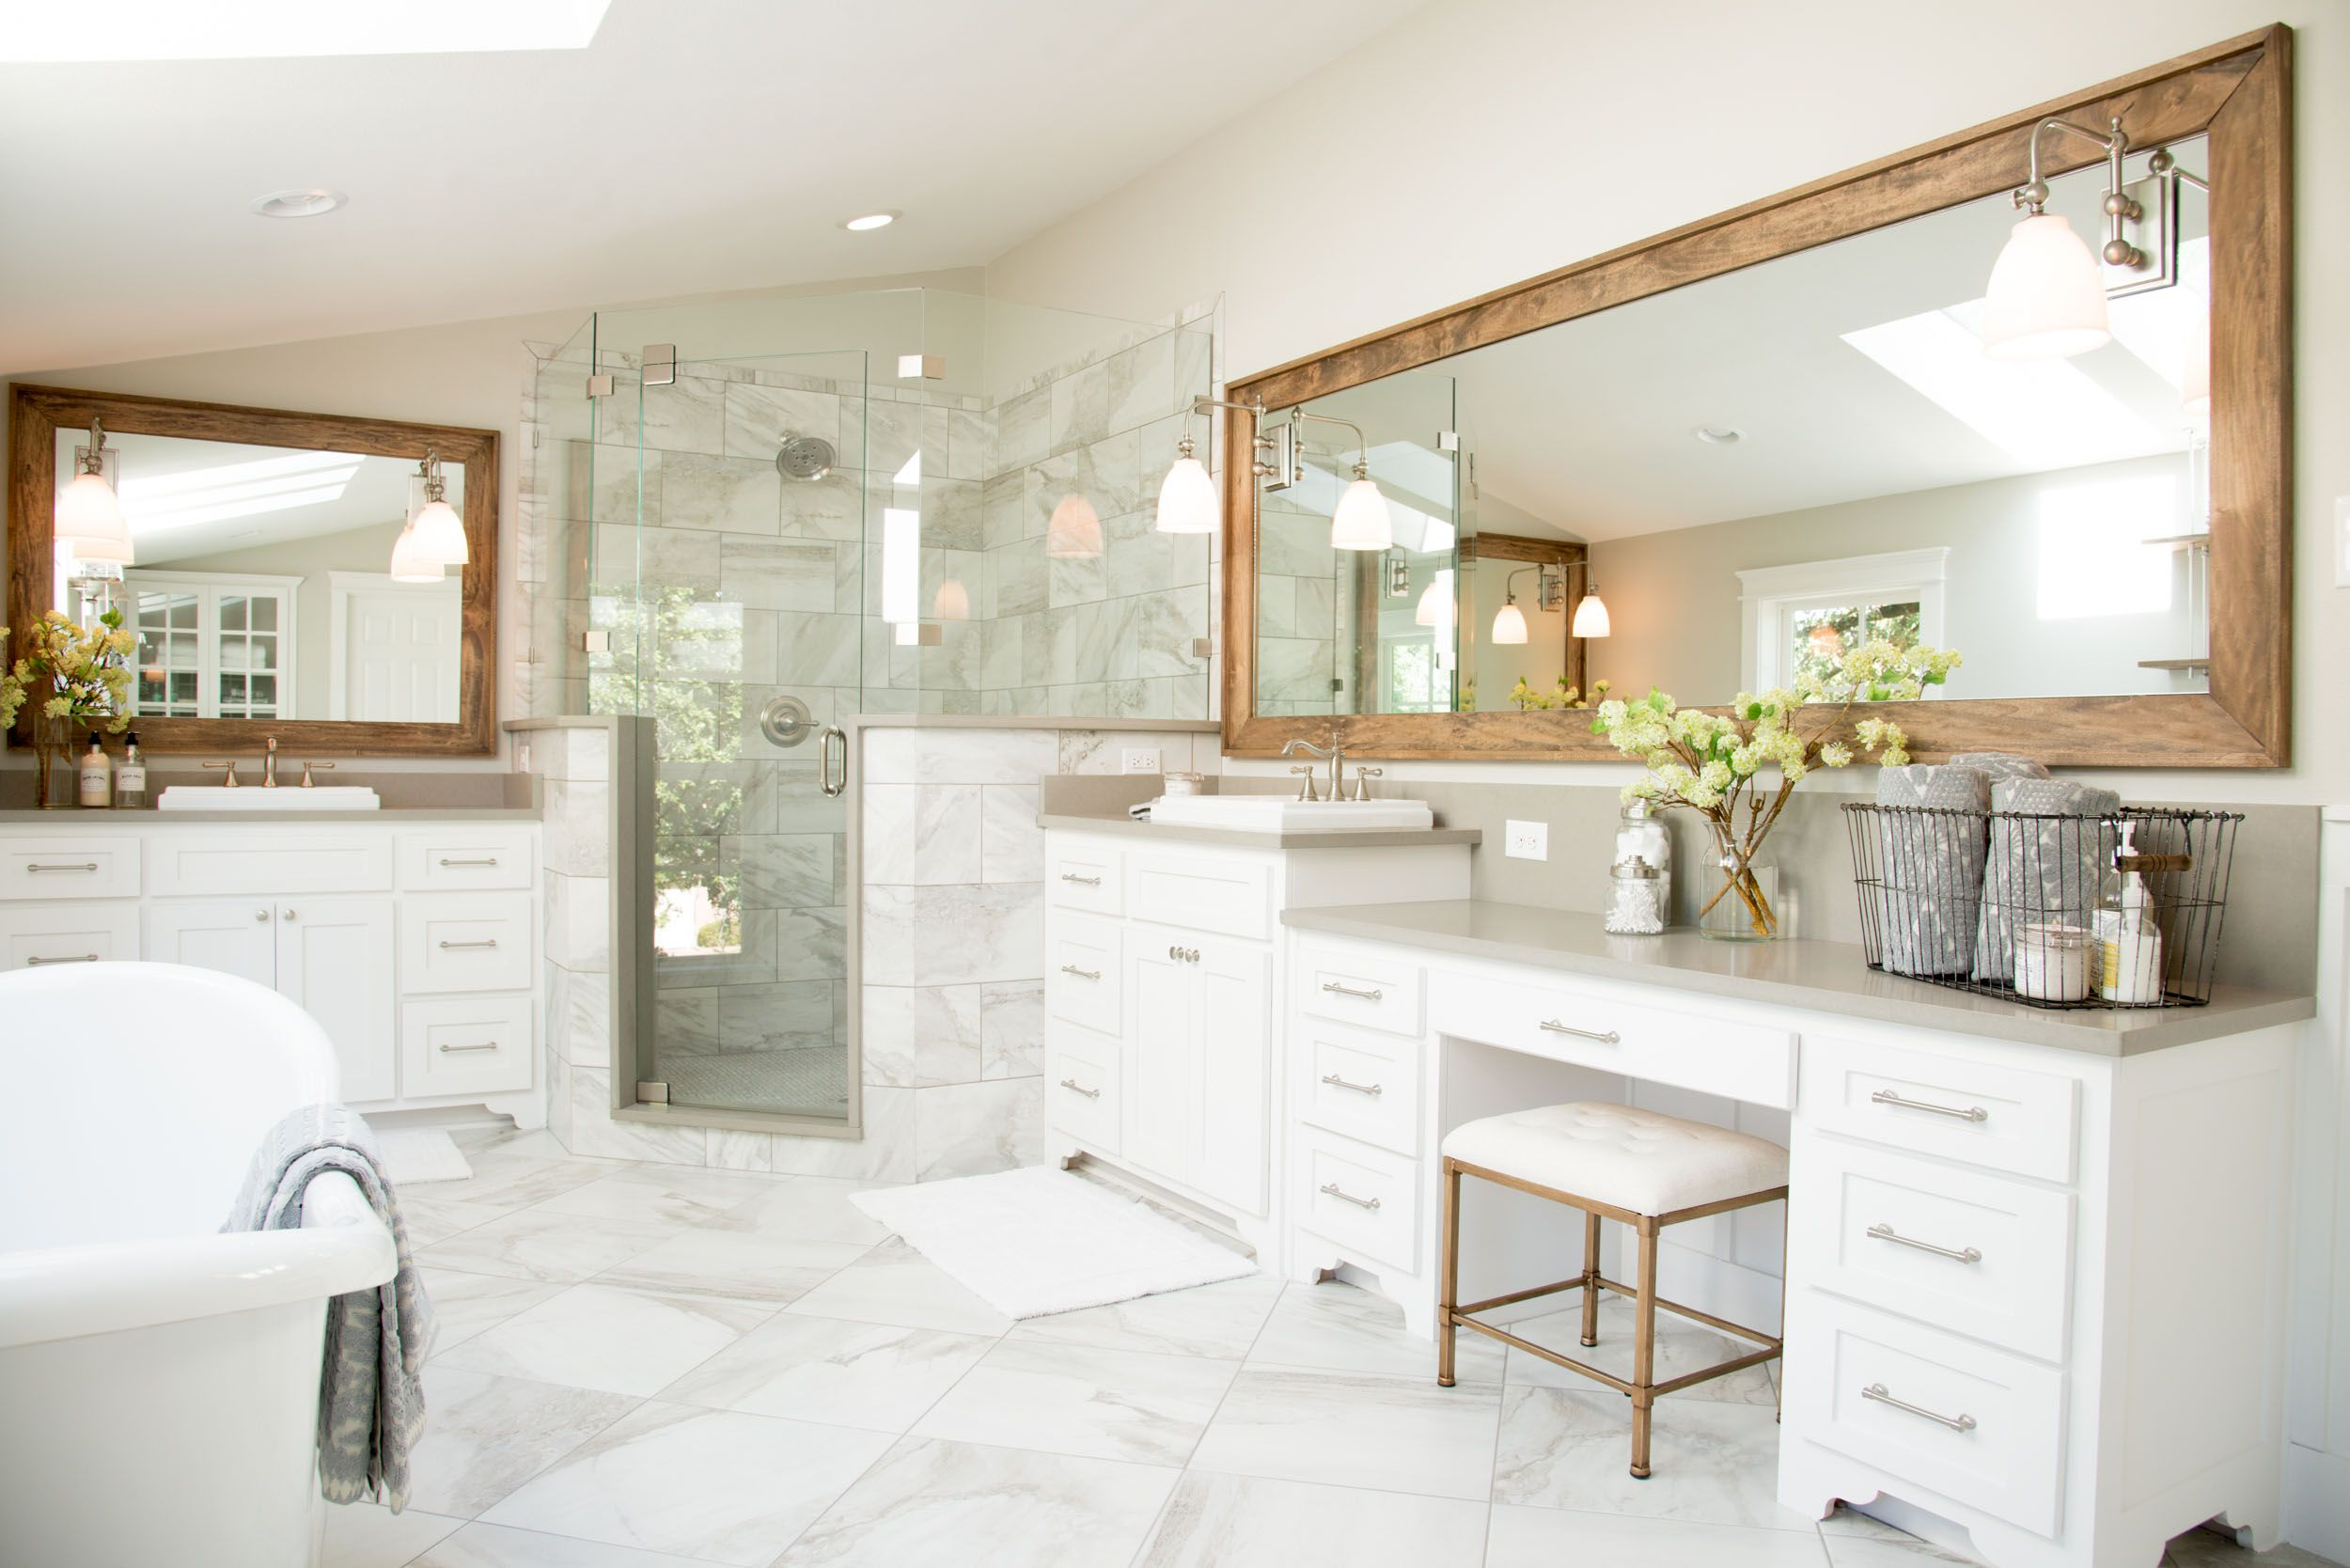 White Upper Bathroom Cabinet season 4 episode 1 | house seasons, joanna gaines and magnolia